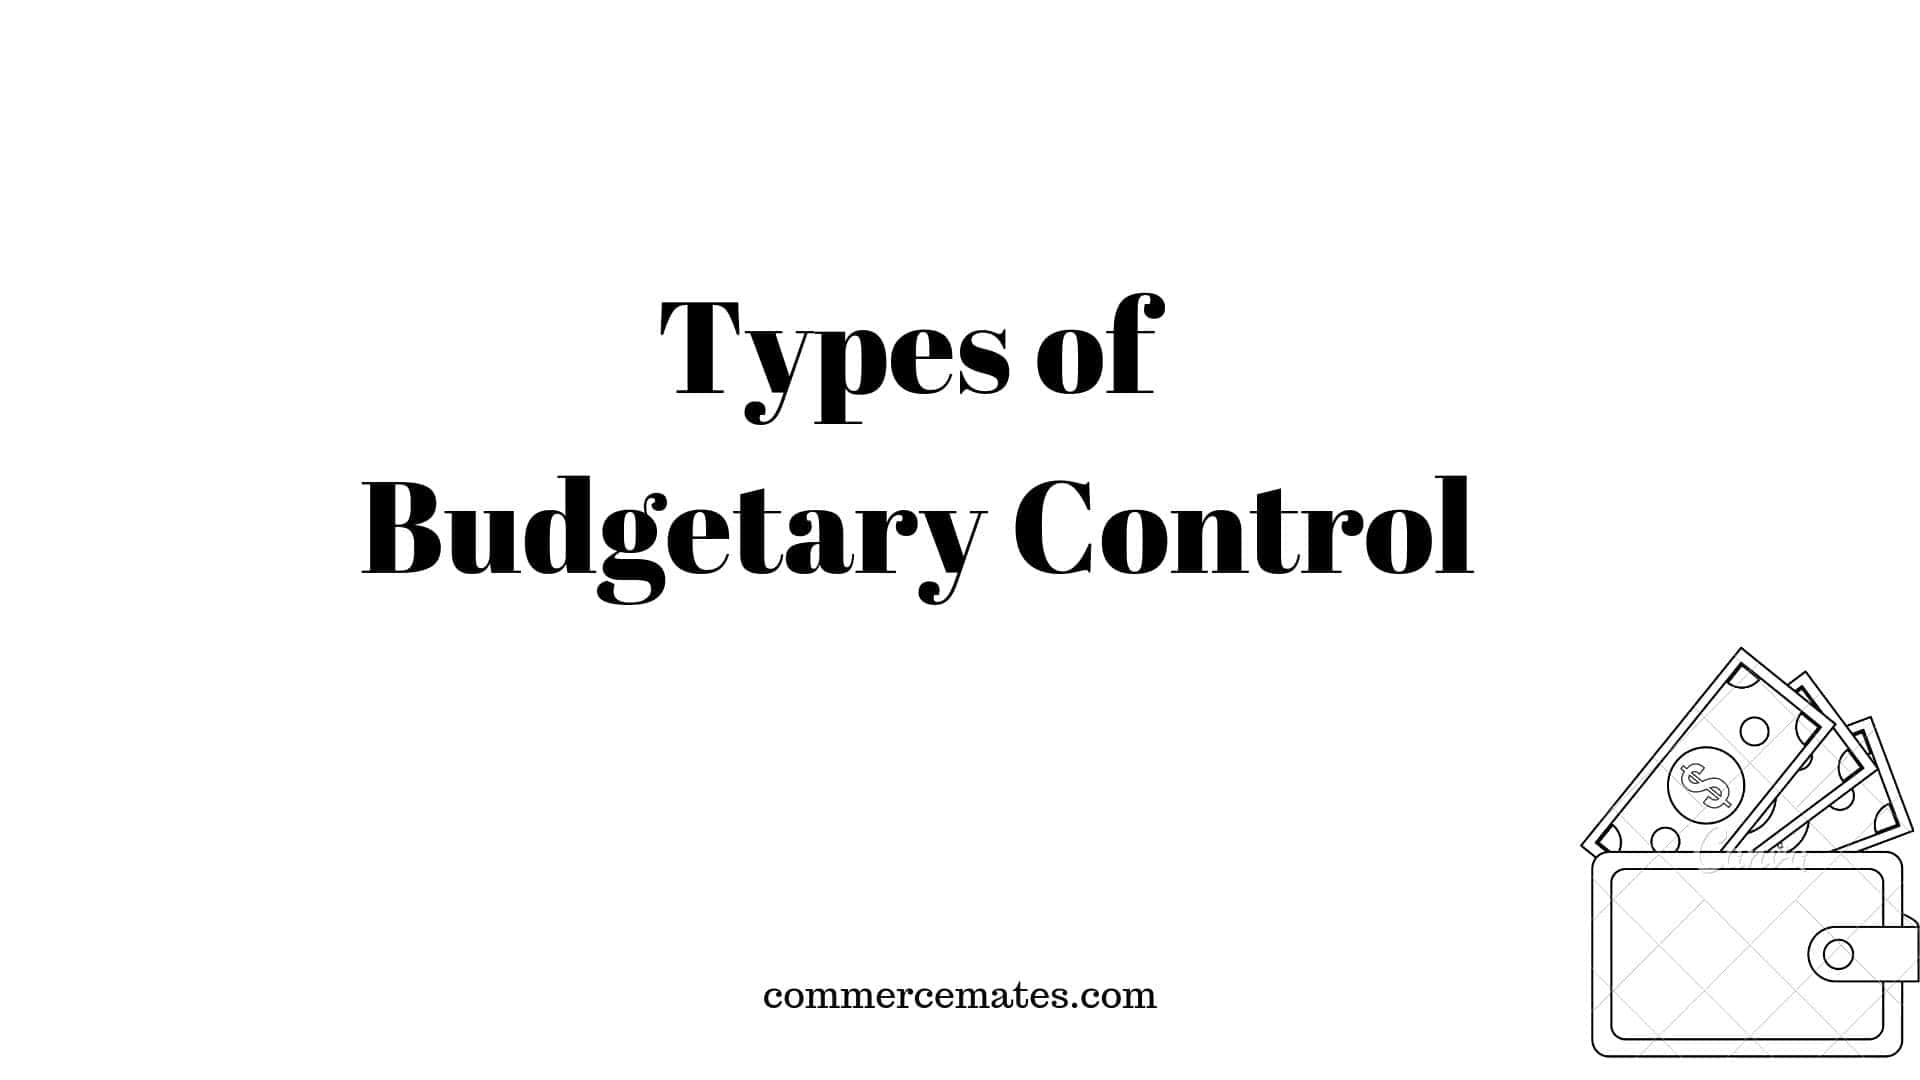 Types of Budgetary Control